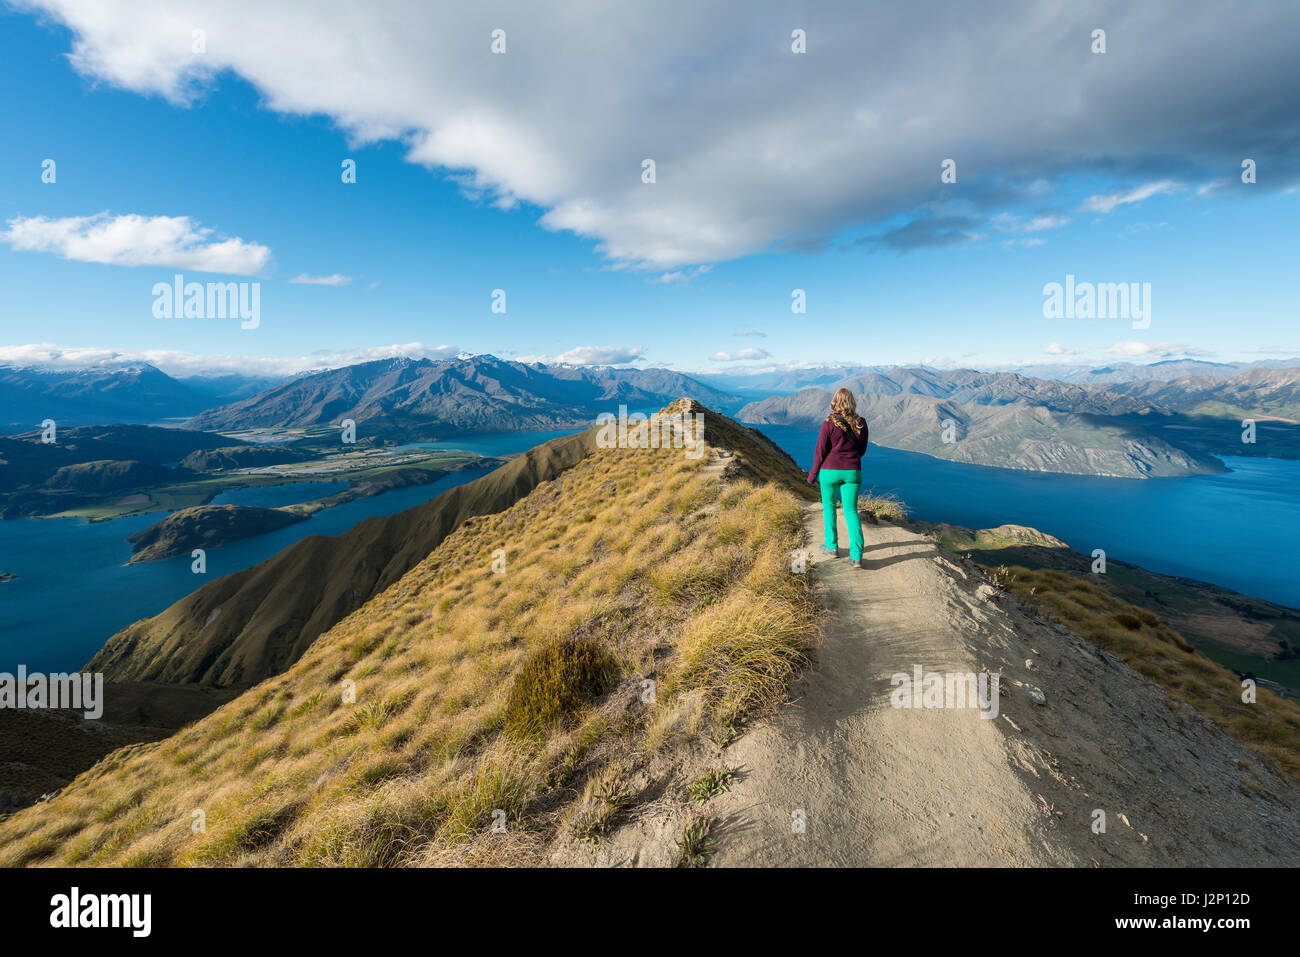 Woman hiking on ridge, view of mountains and lake, Roys Peak, Lake Wanaka, Southern Alps, Otago Region, Southland, - Stock Image